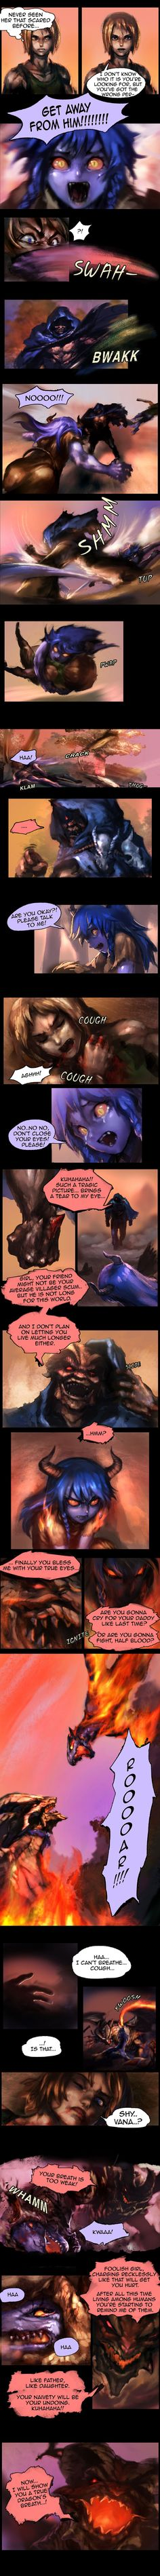 Shyvana~ The Half Dragon Tale. Page 5/6 by ptcrow.deviantart.com on @DeviantArt